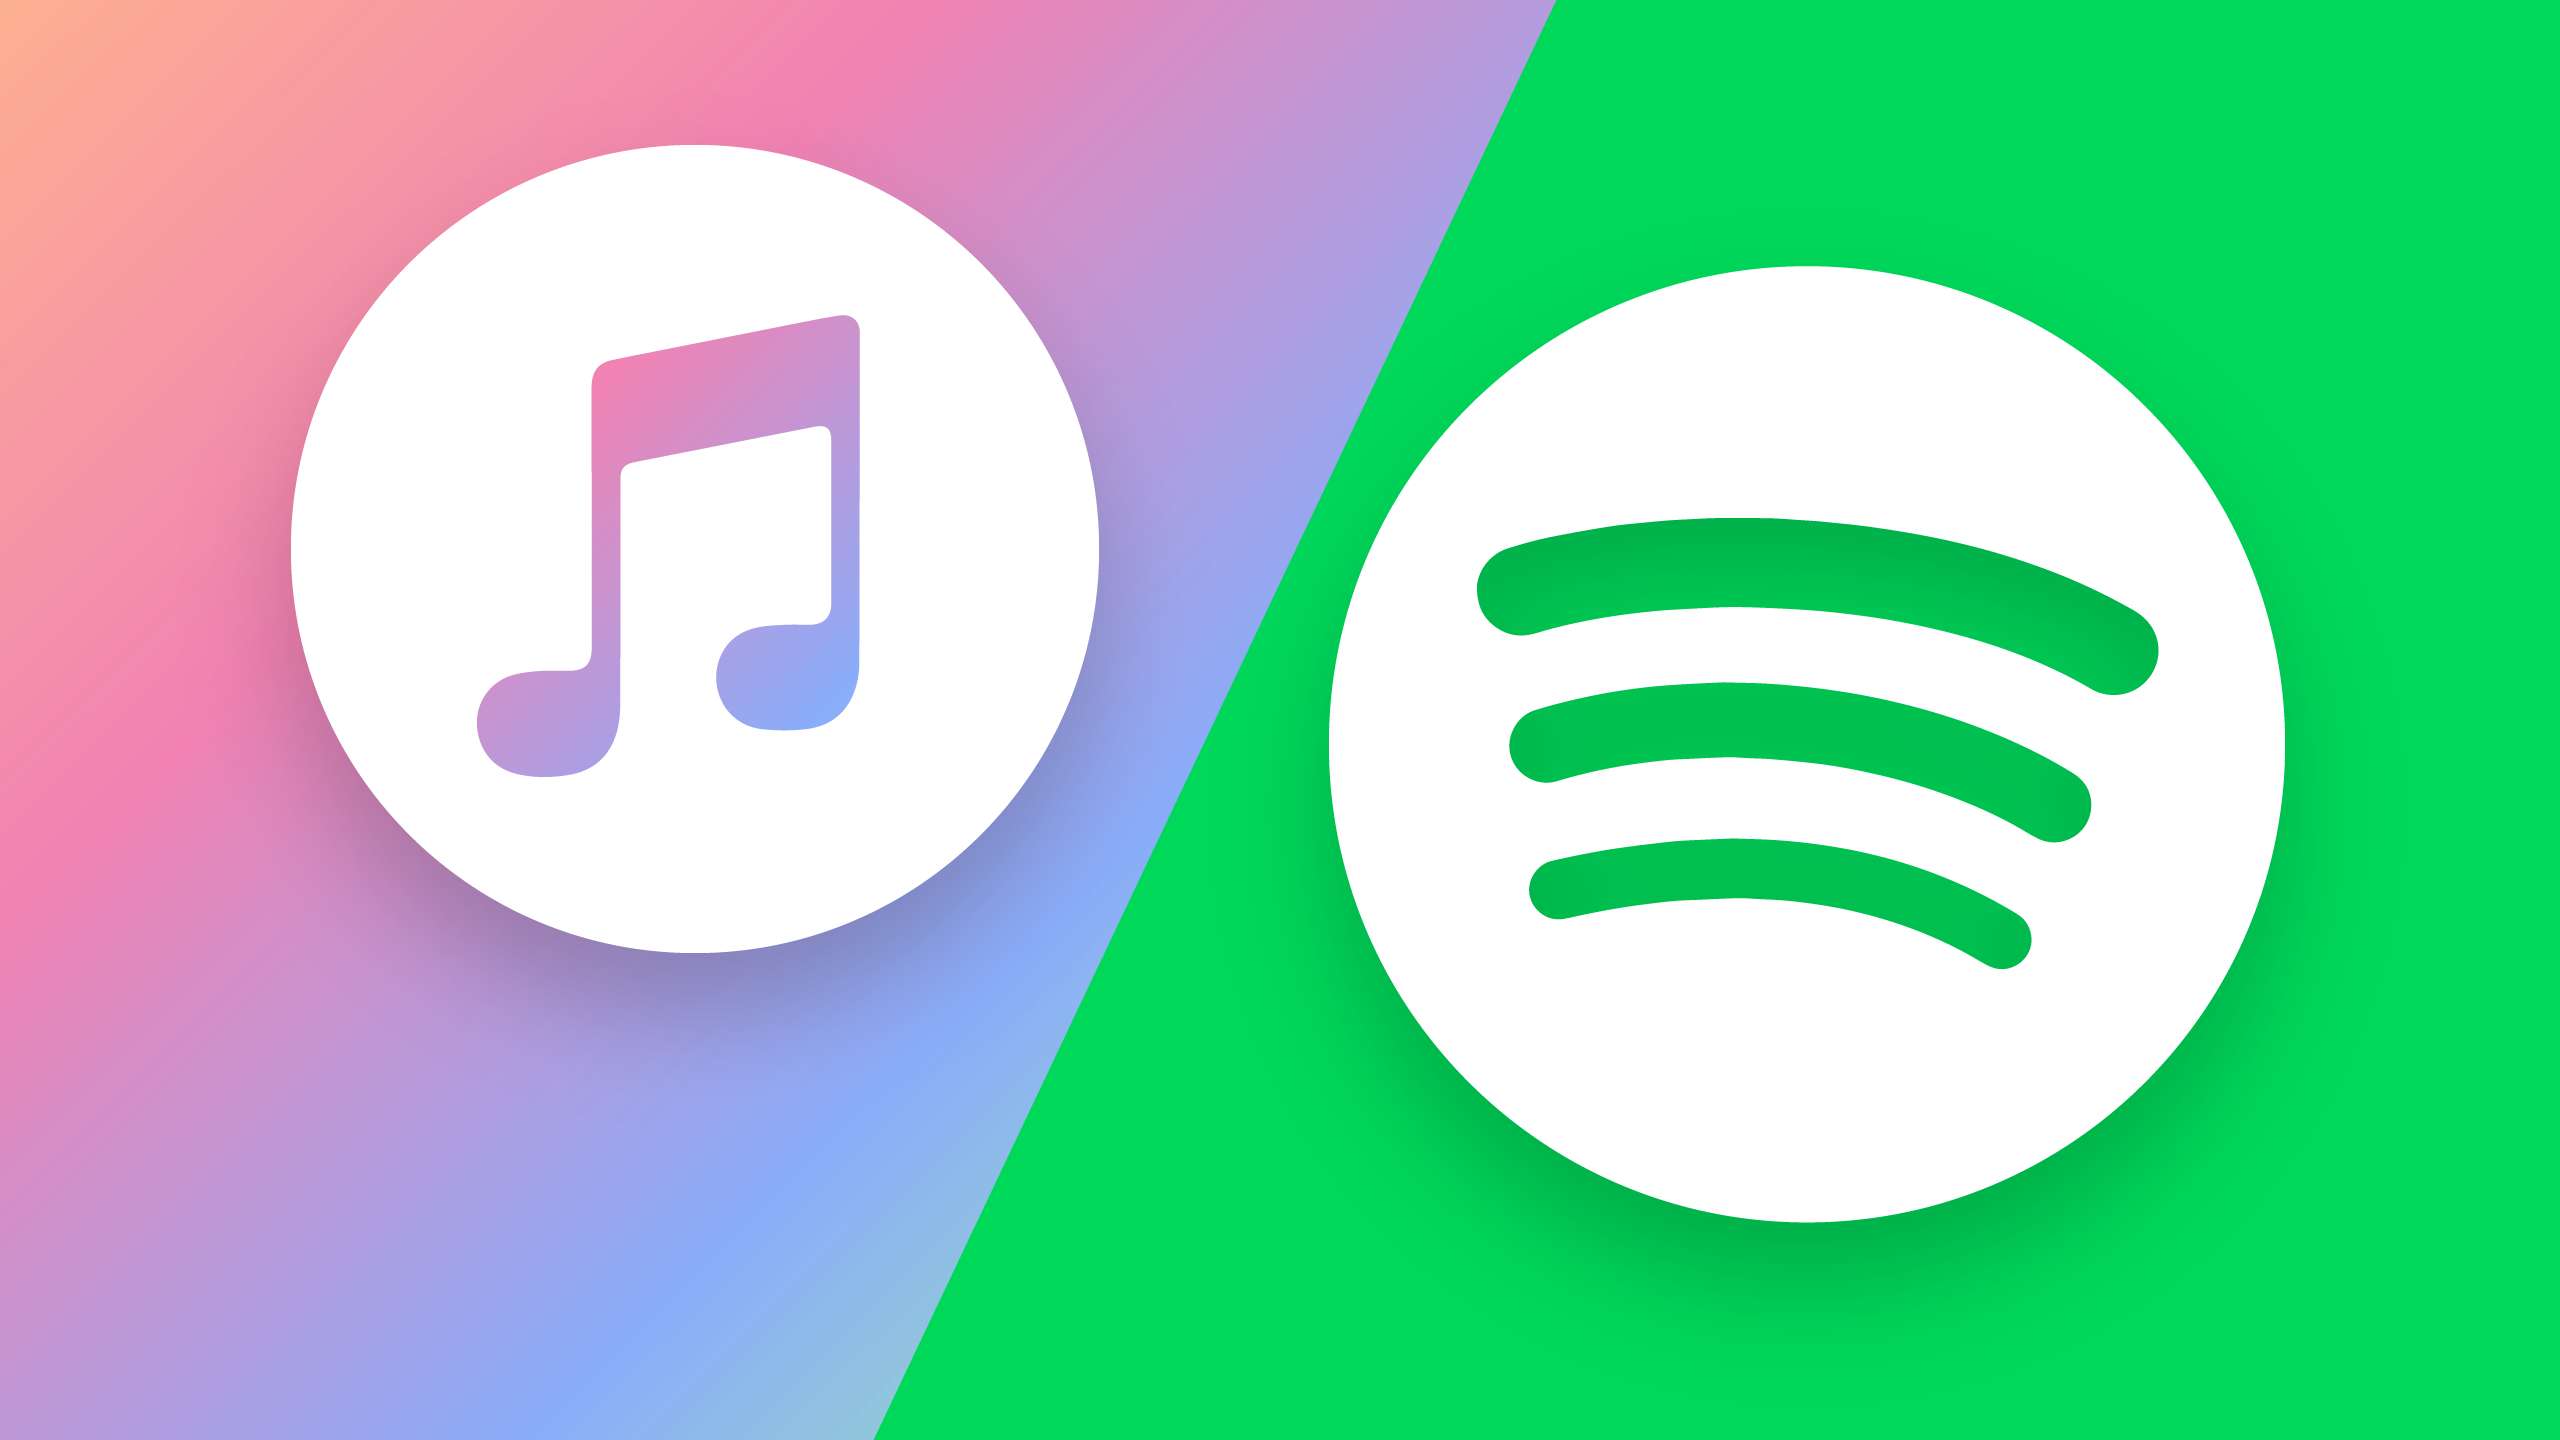 Spotify preps to go public with 60M subscribers, outpacing ...